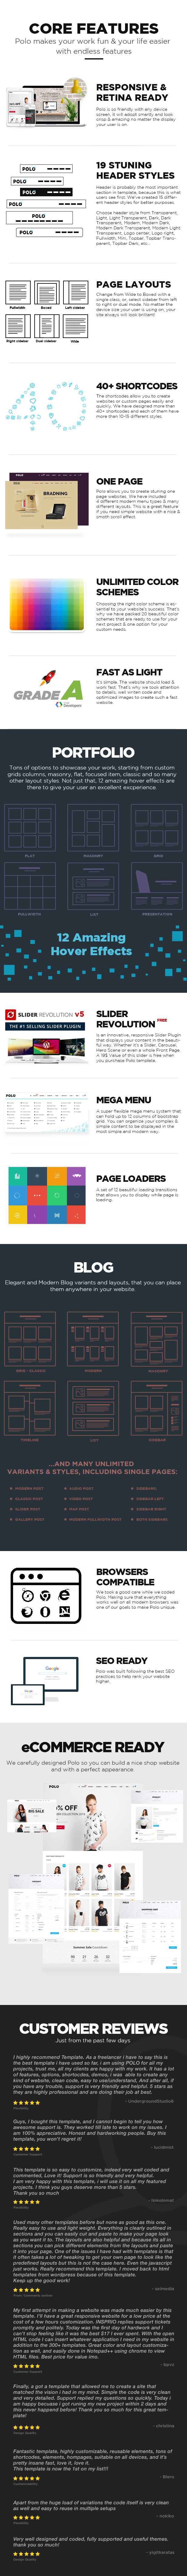 Polo - Responsive Multi-Purpose HTML5 Template - 11